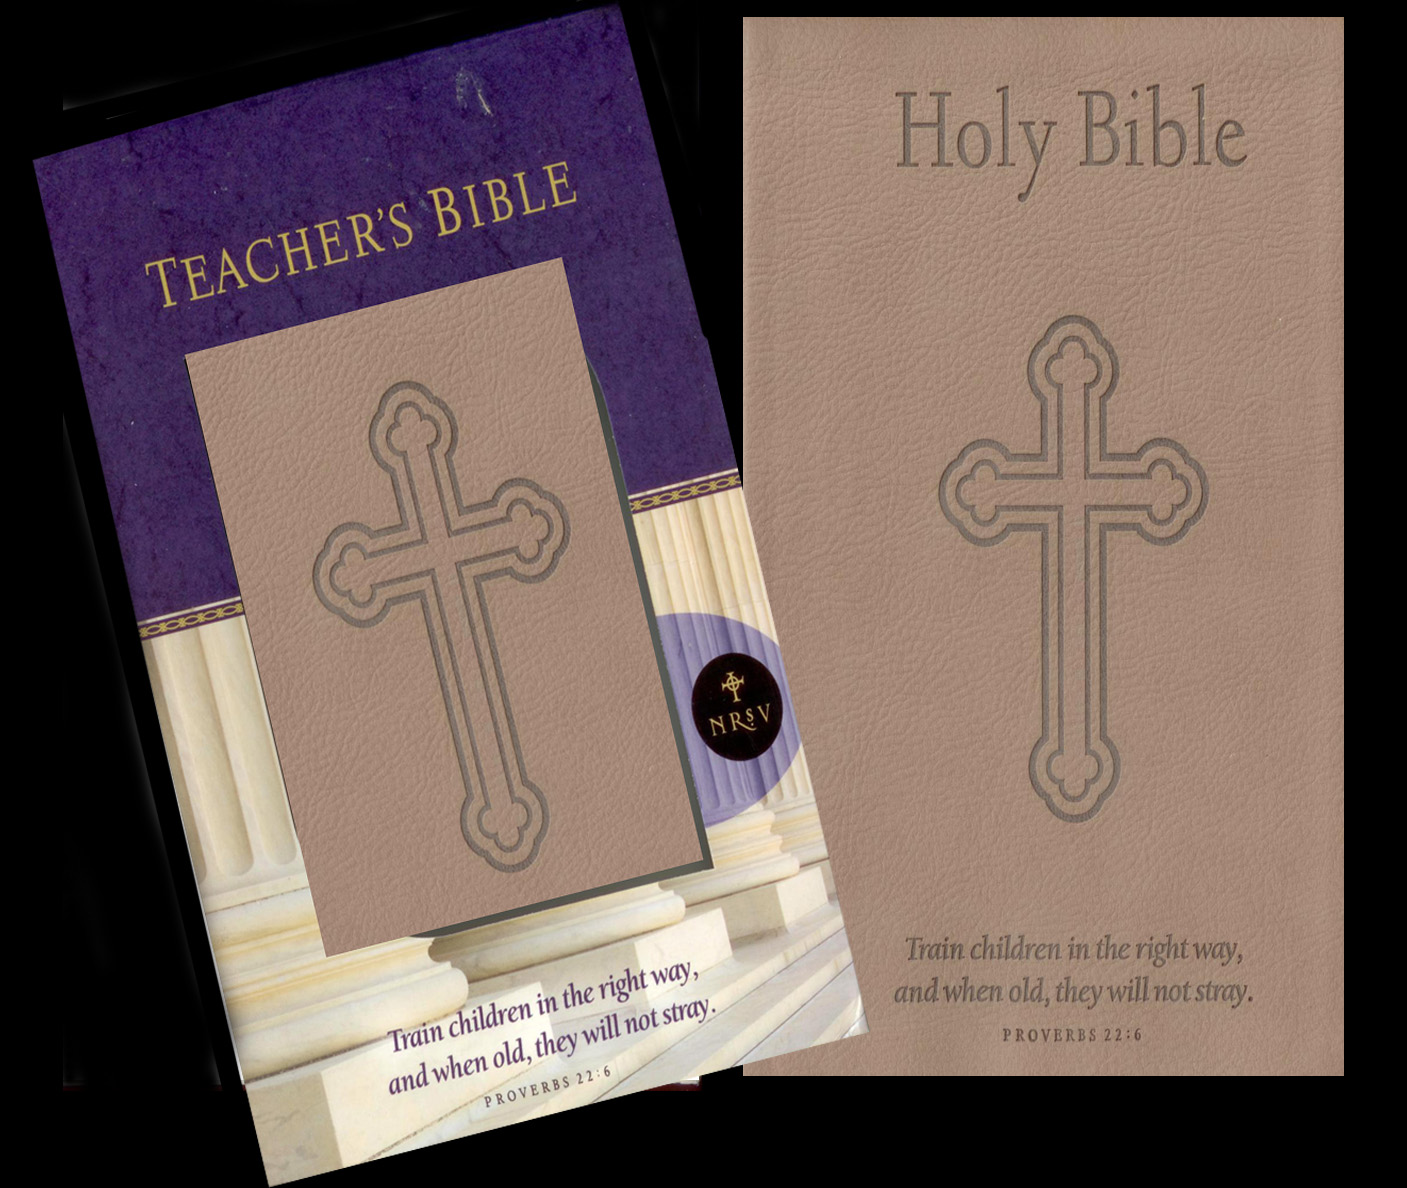 The Teacher's Bible from Abingdon Press